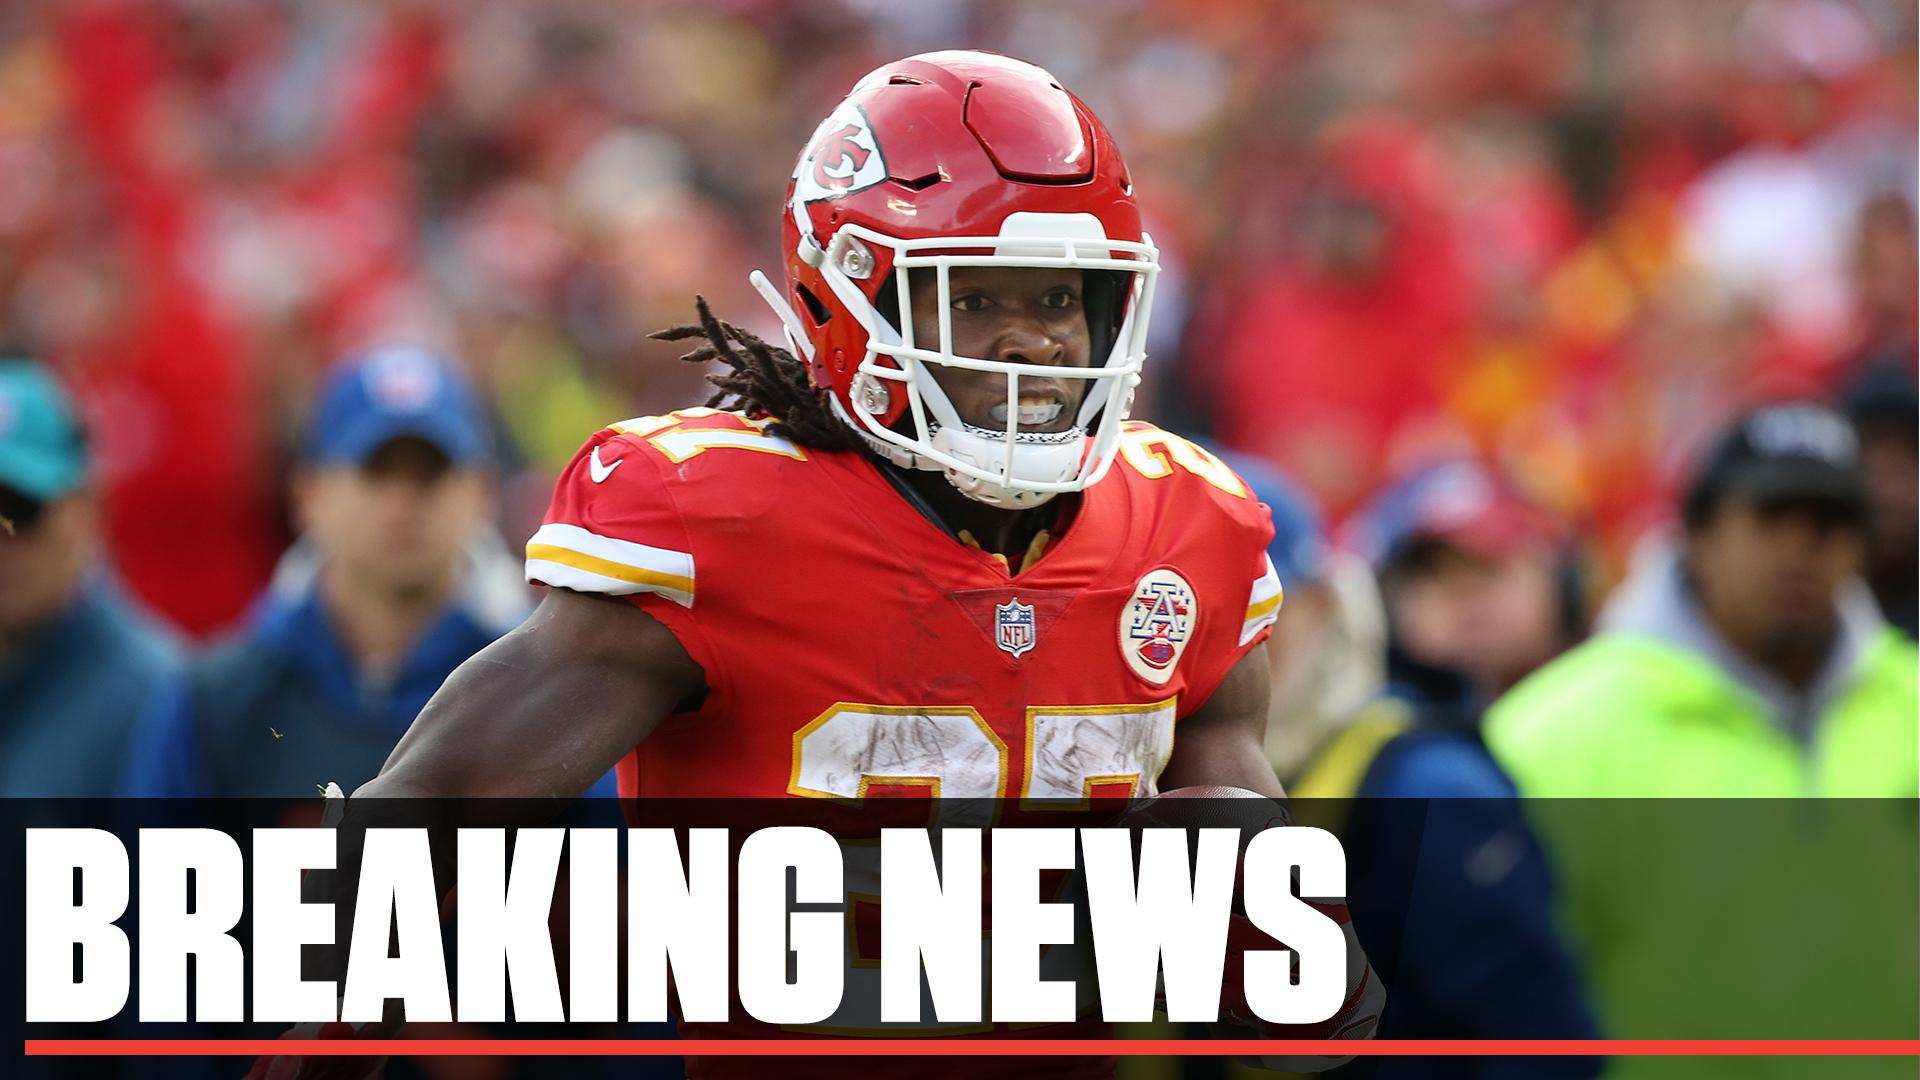 Breaking: The Browns announce that they have signed RB Kareem Hunt. https://t.co/2Fuqg96w78